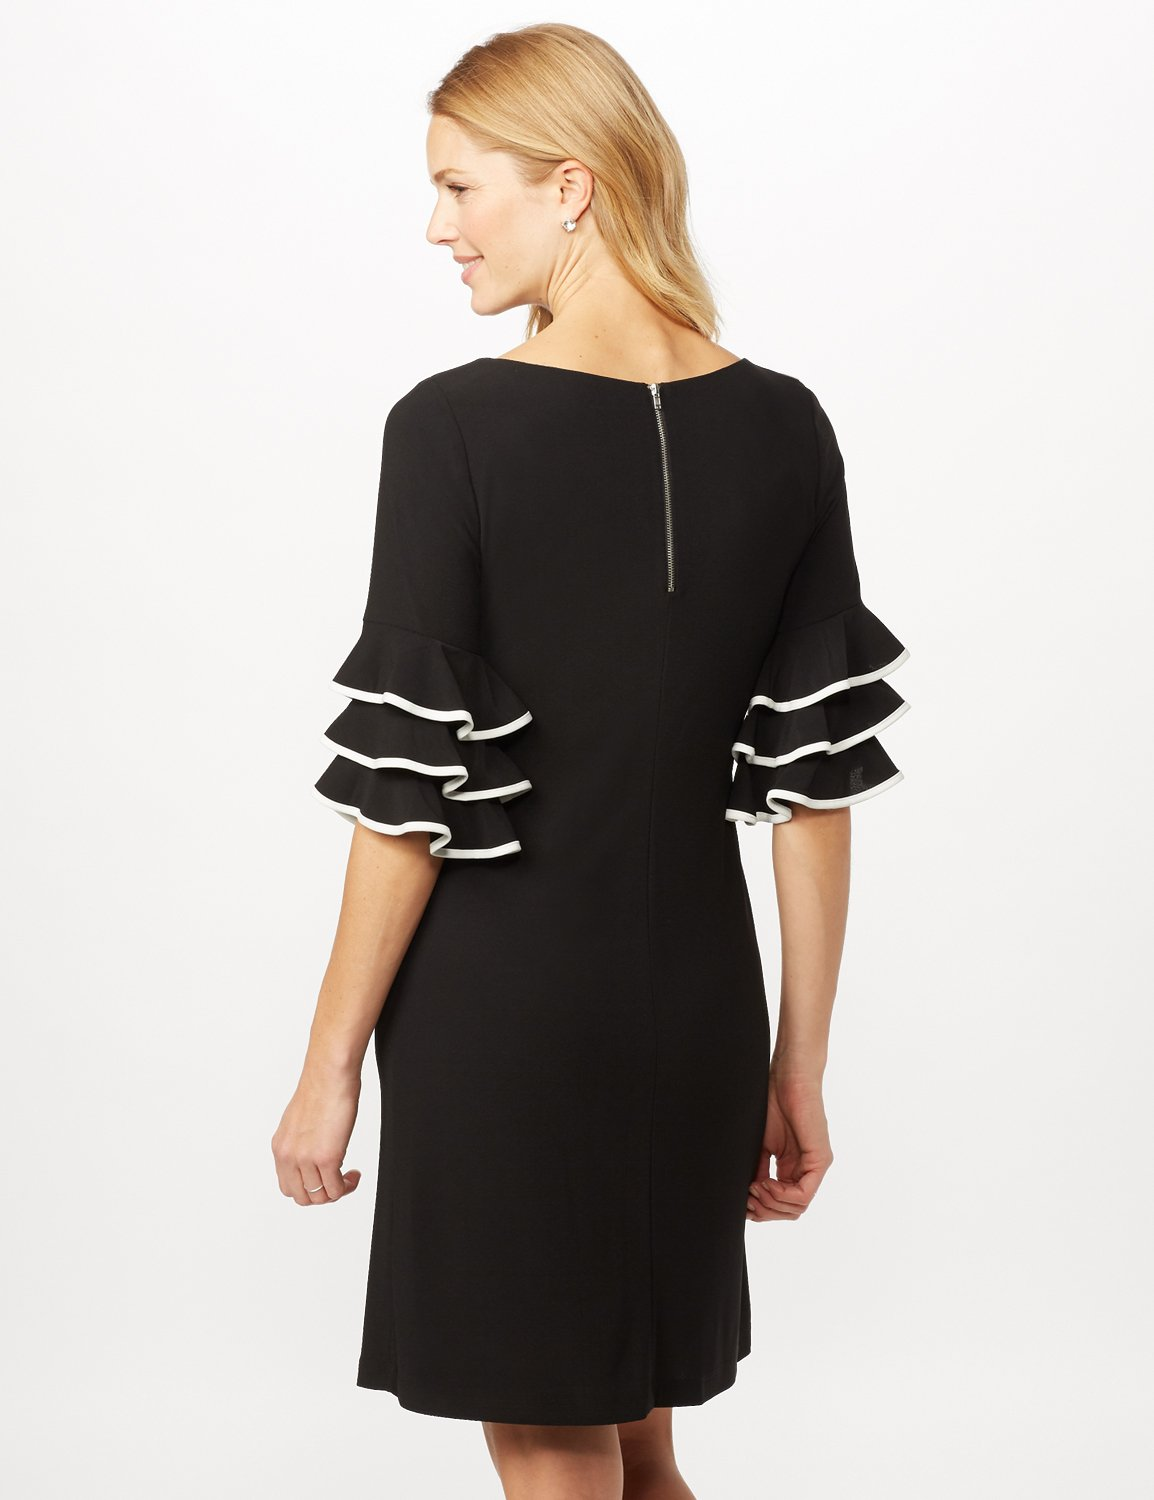 Ruffle Chacha Sleeve Sheath Dress -Black/ivory - Back